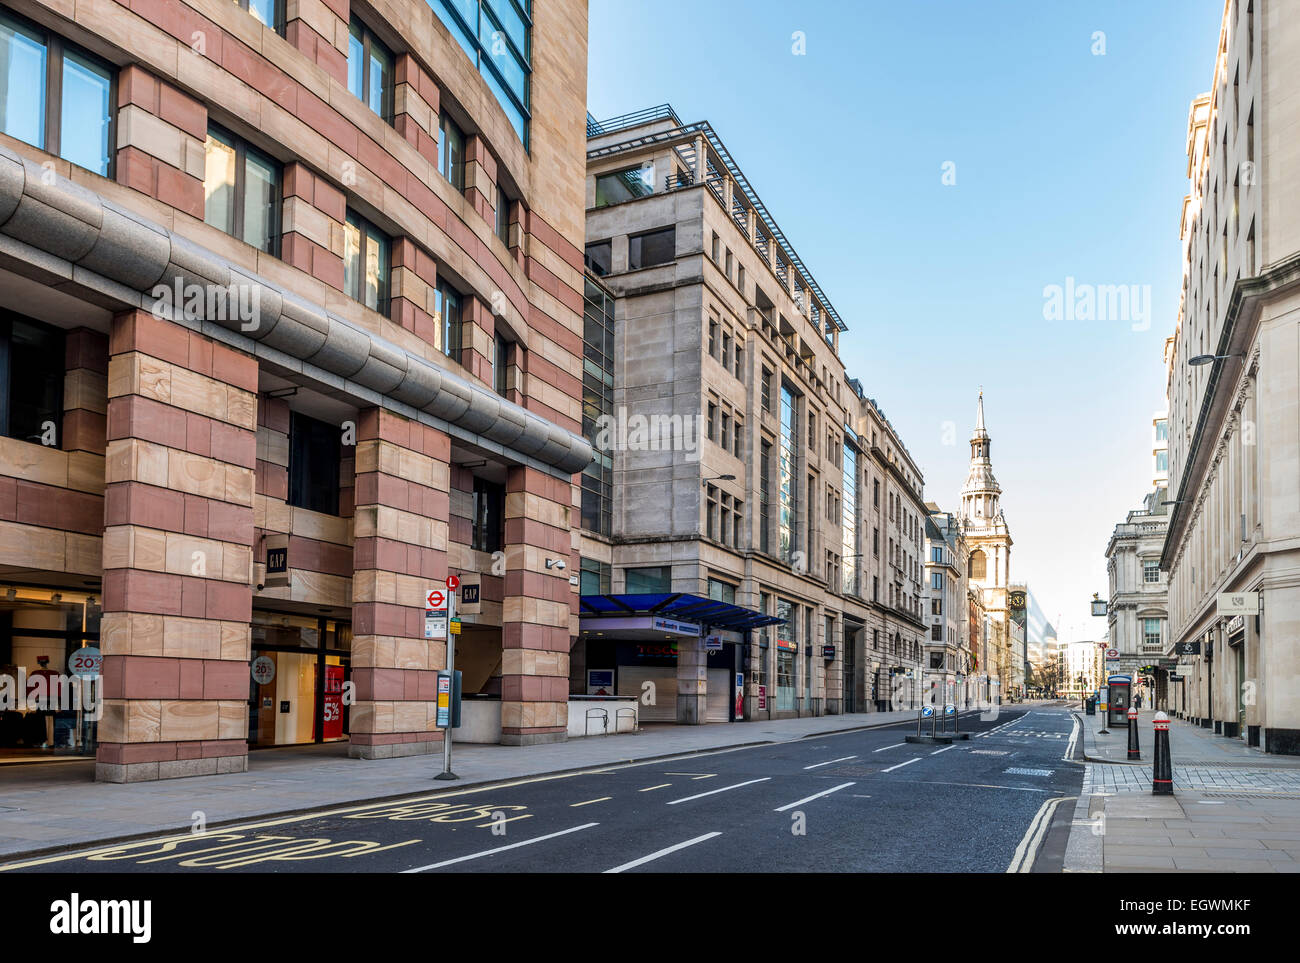 Views down Poultry in the City of London. 1 Poultry is on the left and St Mary le Bow church in the distance - Stock Image